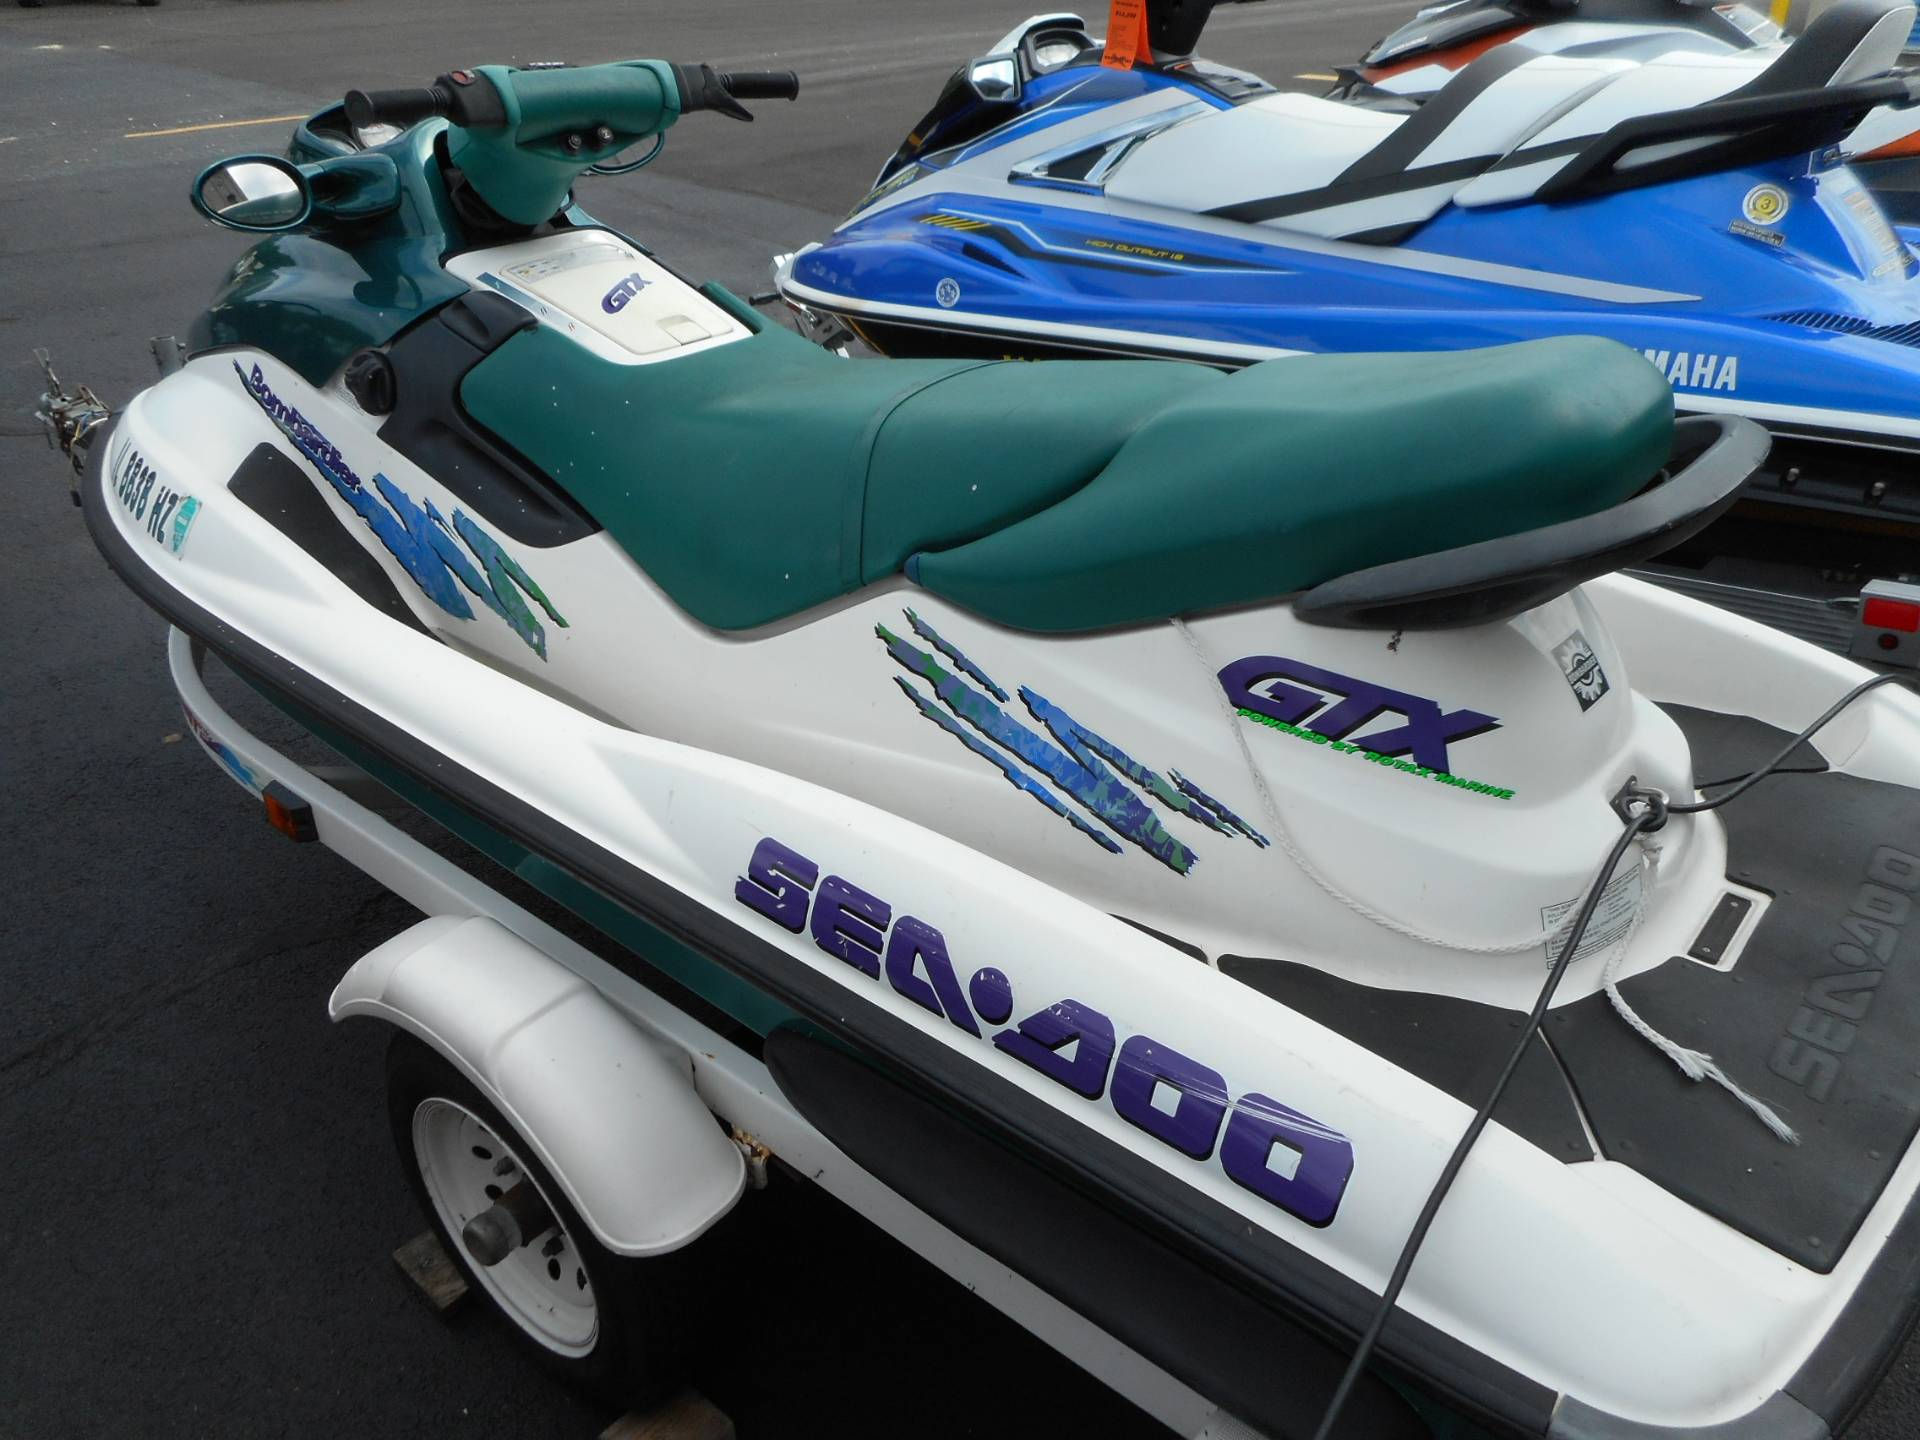 1997 Seadoo Gtx Used Sea Doo Watercraft In Belvidere Il